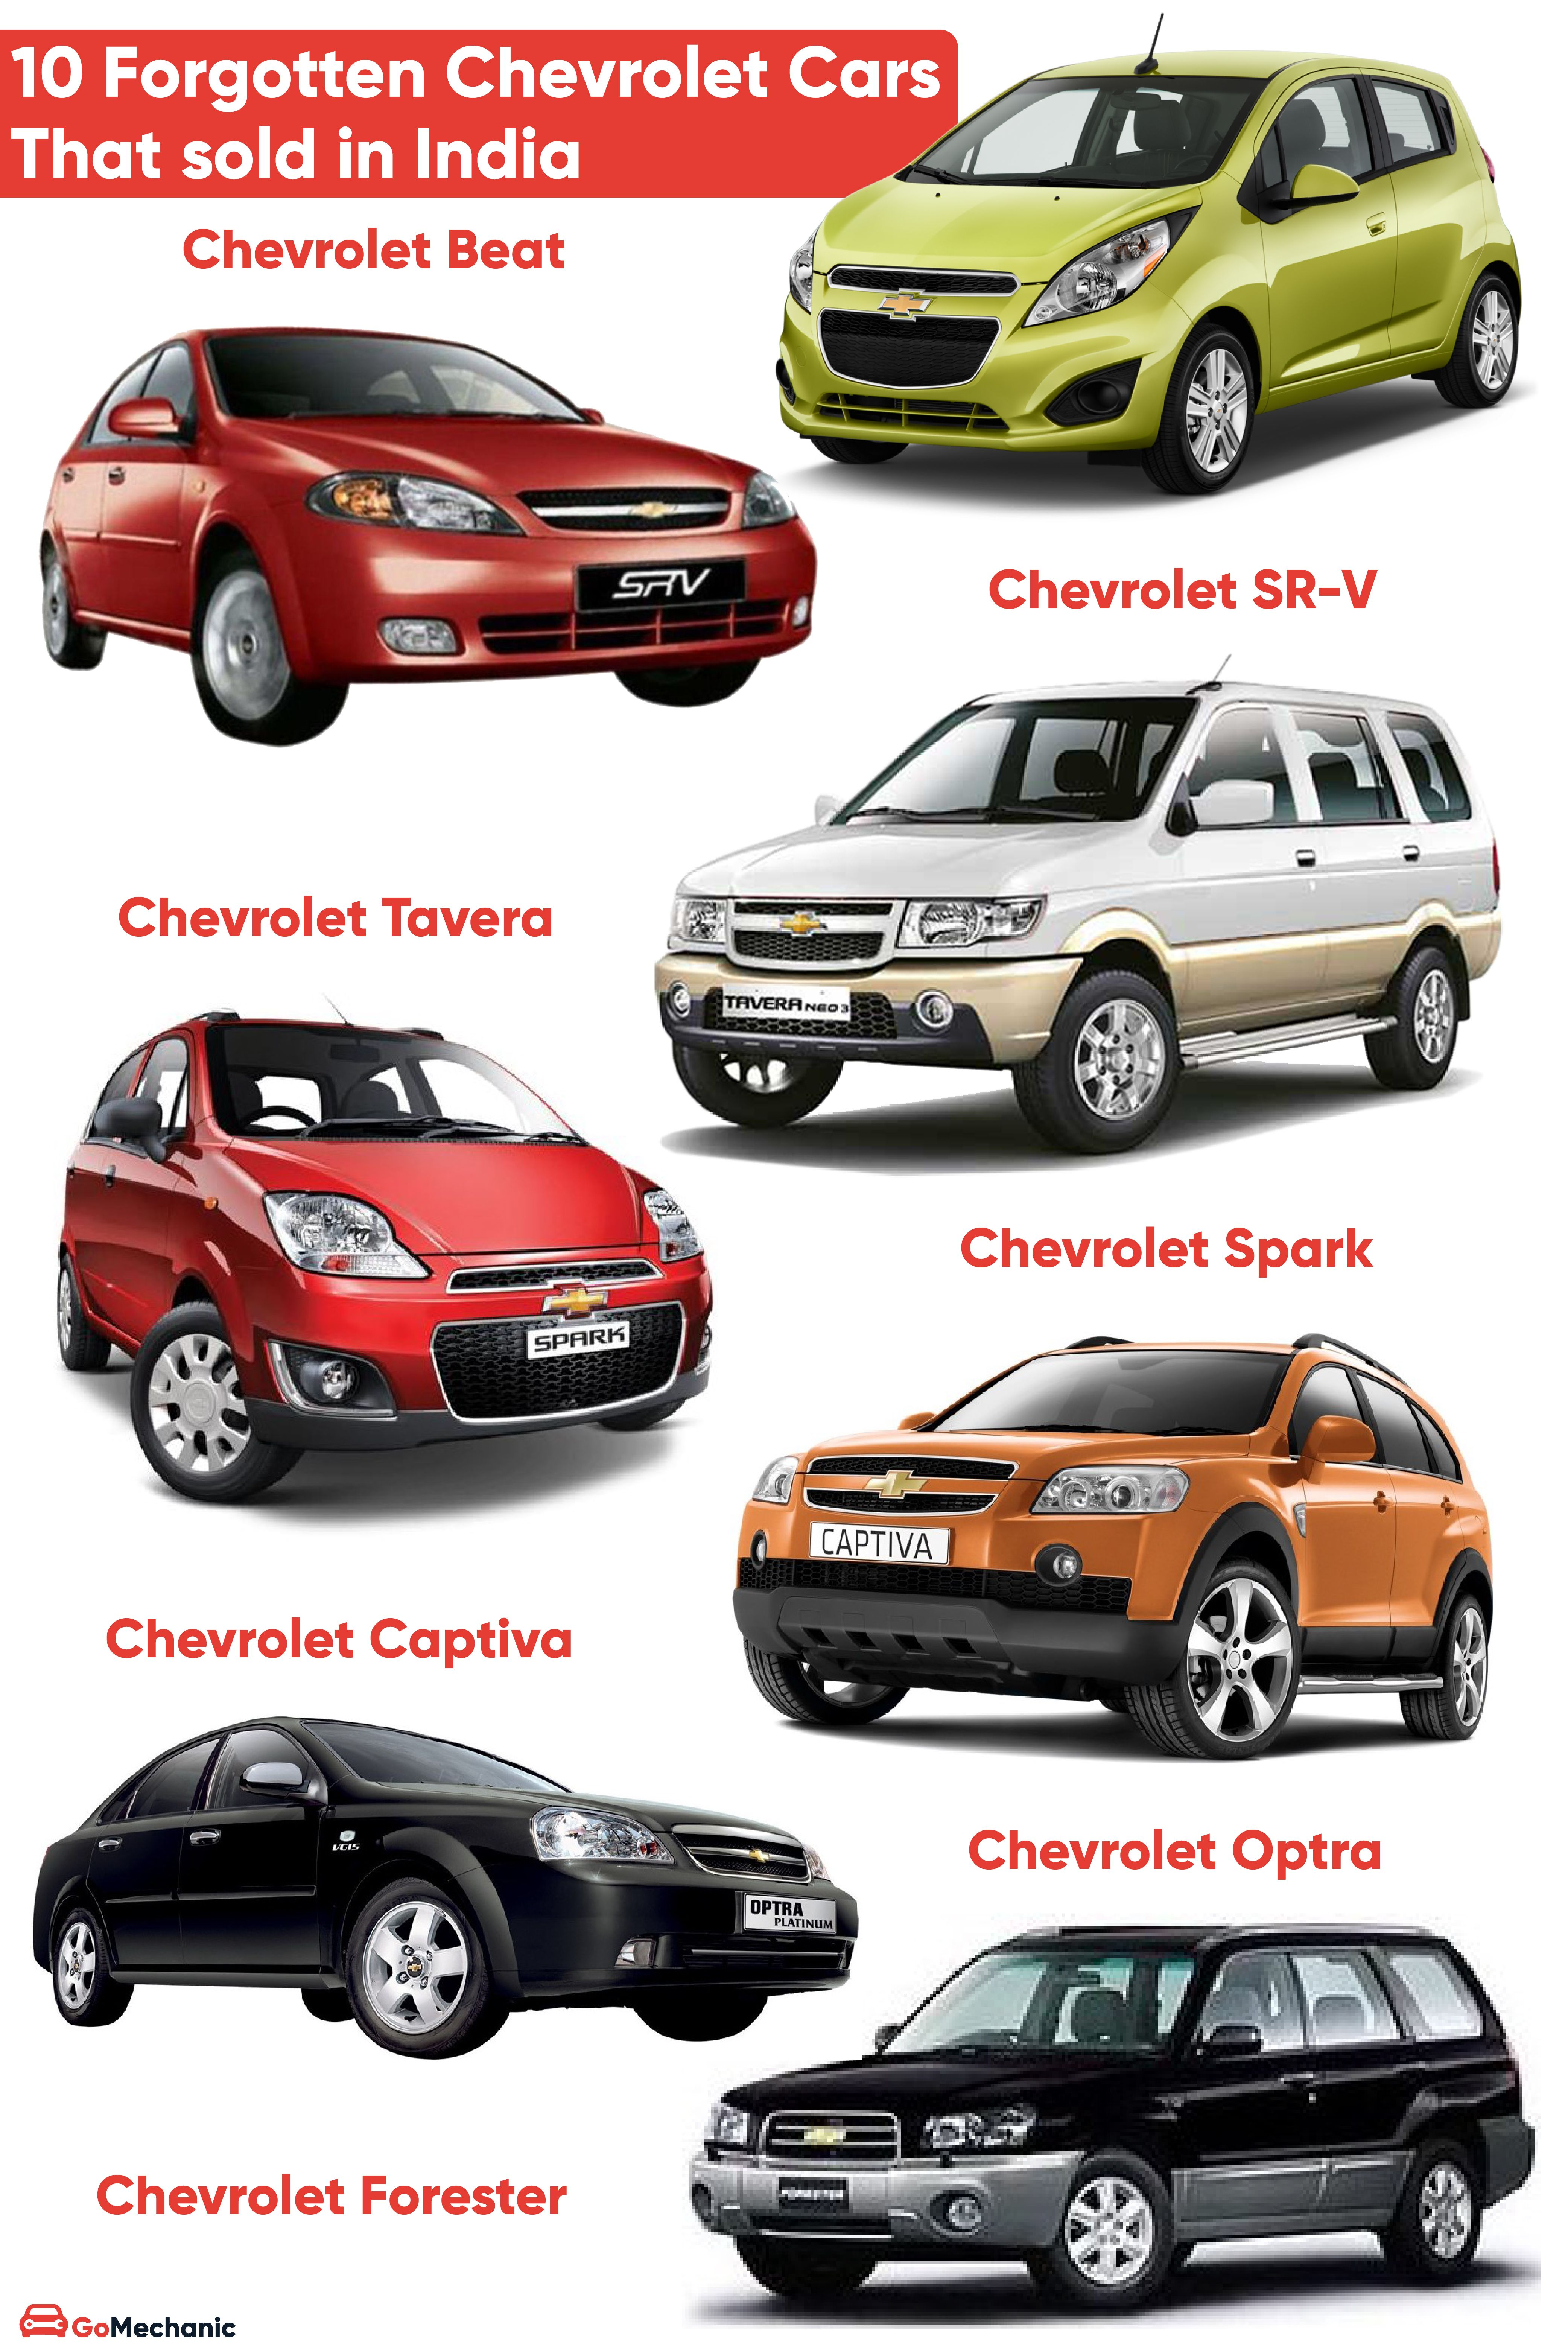 9 Forgotten Chevrolet Cars In India From Chevy Trailblazer To